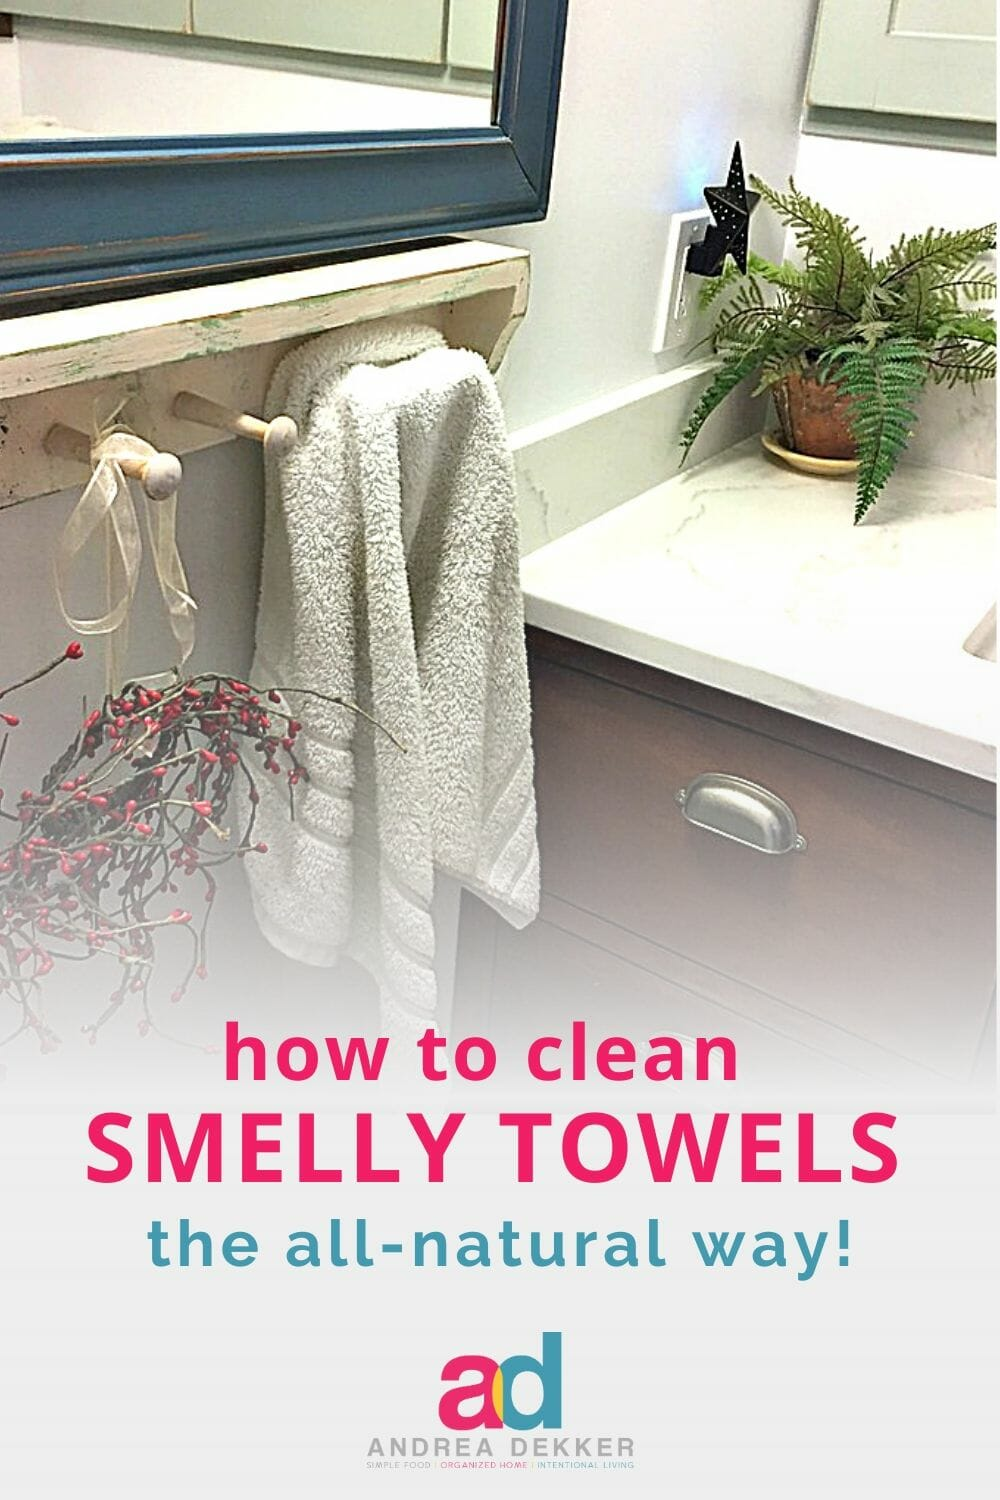 Learn how to clean and refresh your smelly towels in an all-natural way with almost no effort (your washing machine will do all the heavy lifting for you!) via @andreadekker